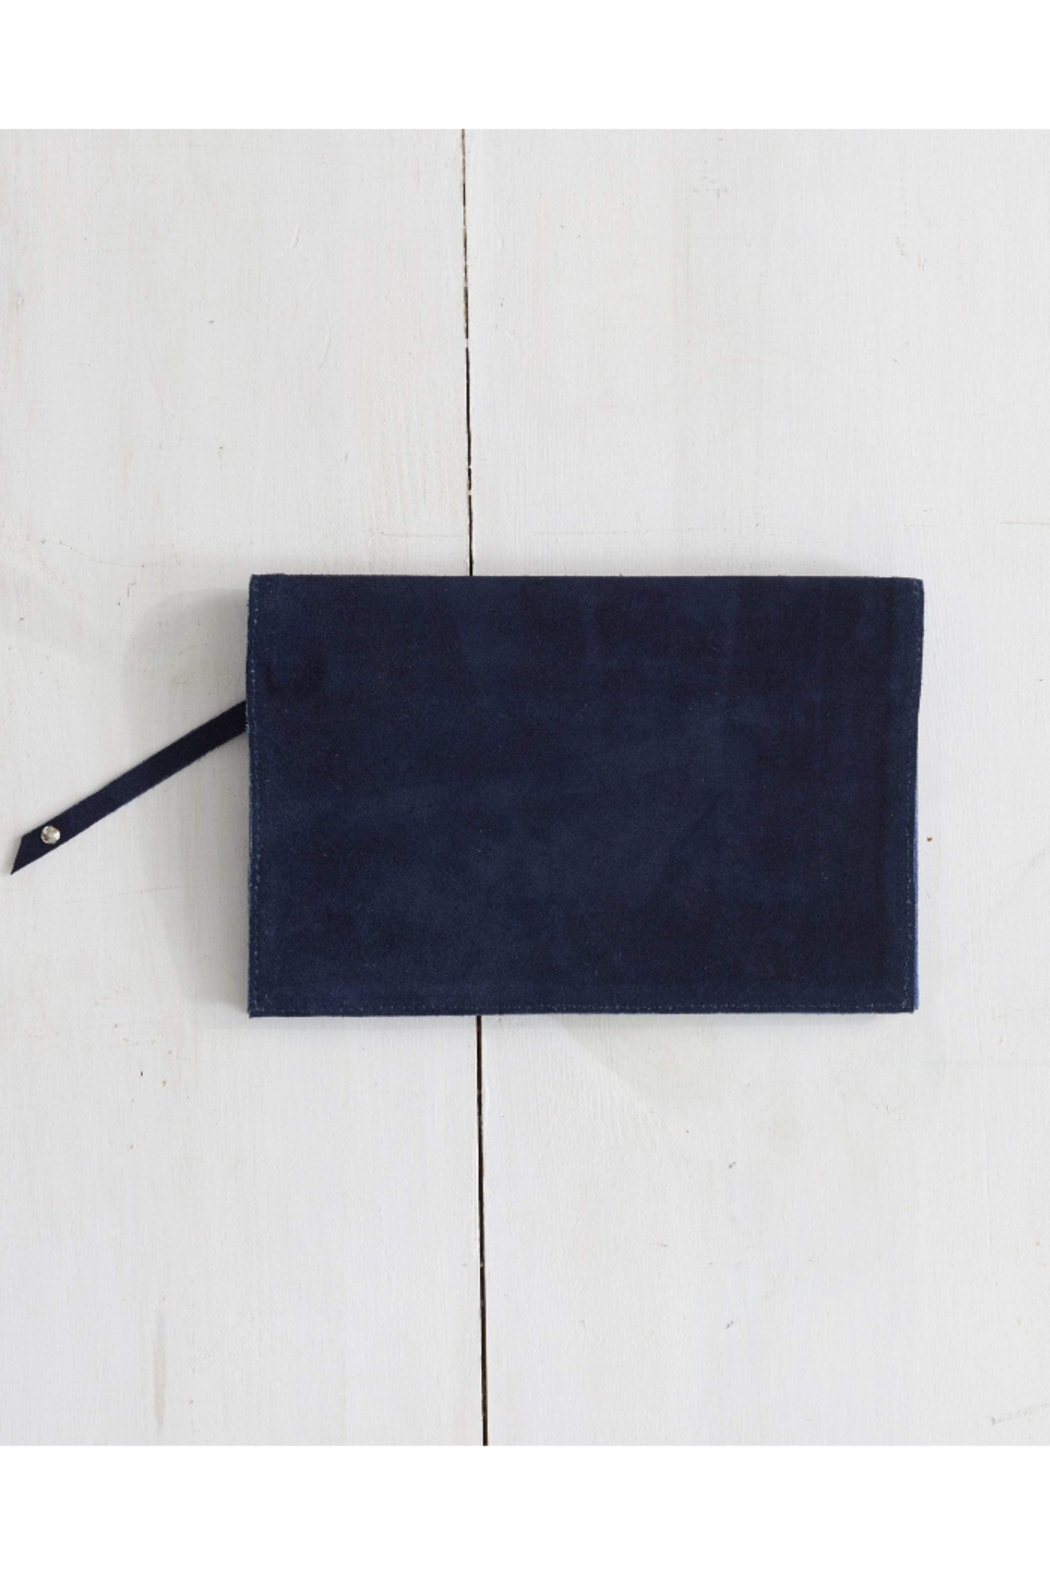 The Birds Nest Foldover Clutch - Navy Suede - Main Image